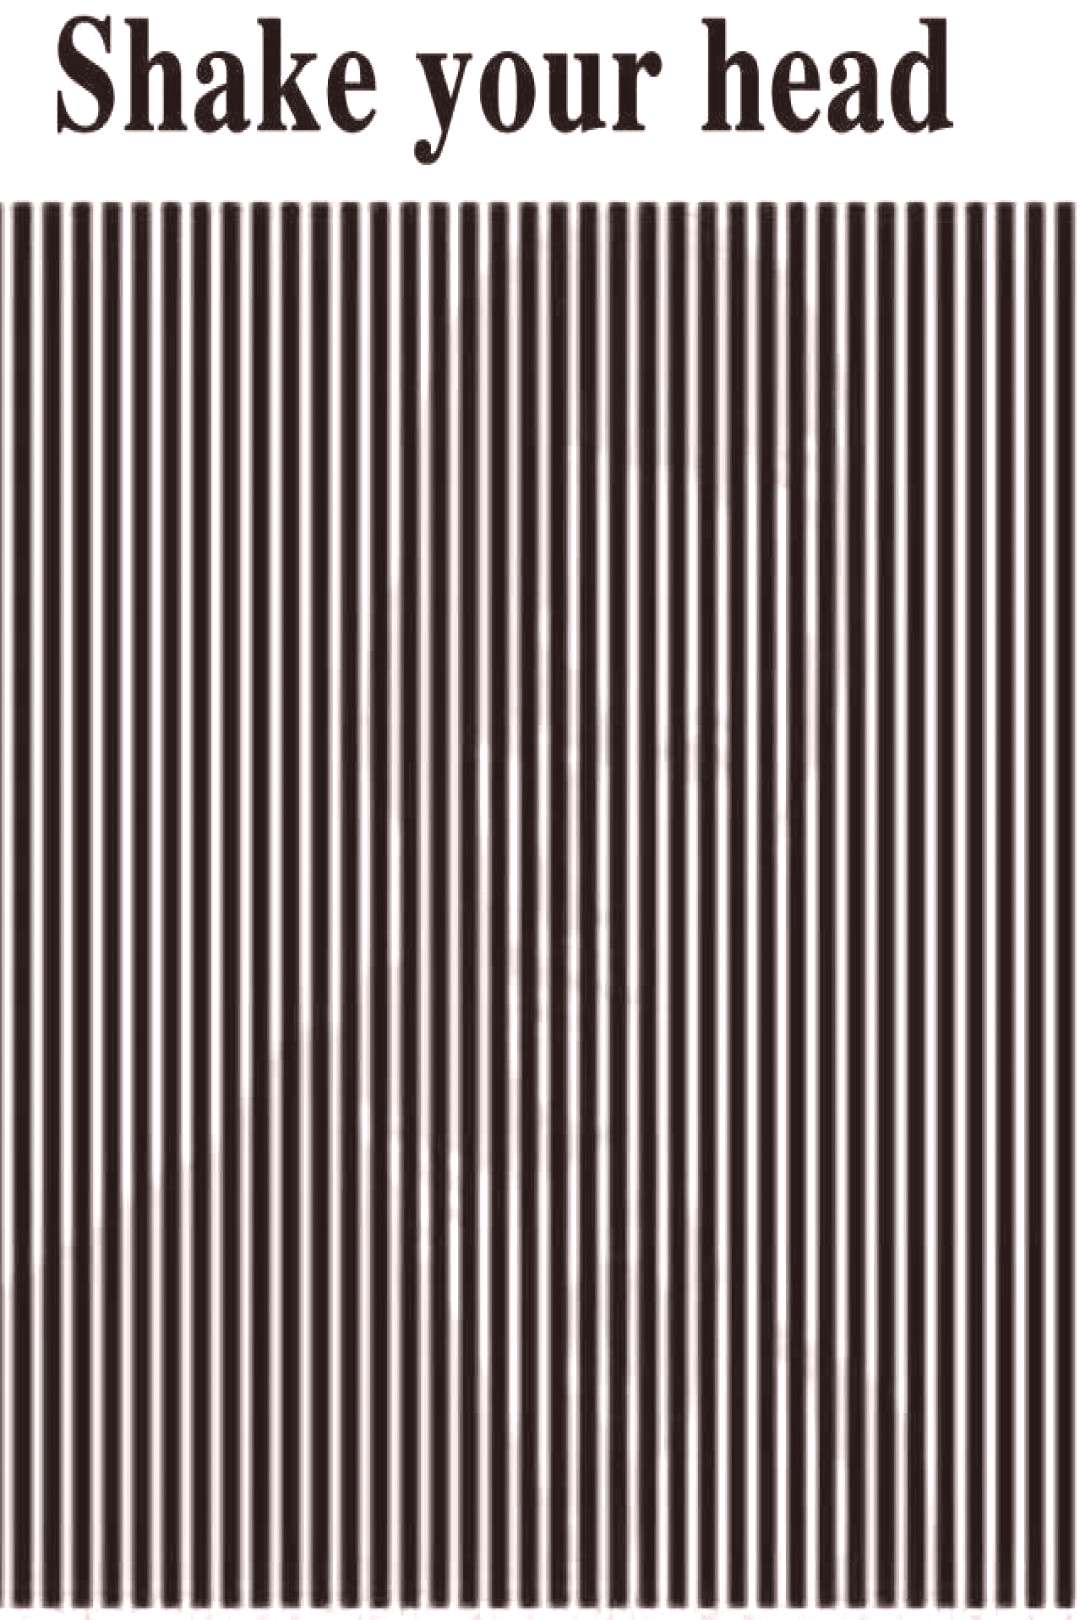 Amazing optical illusions that will blow your mind in minutes!